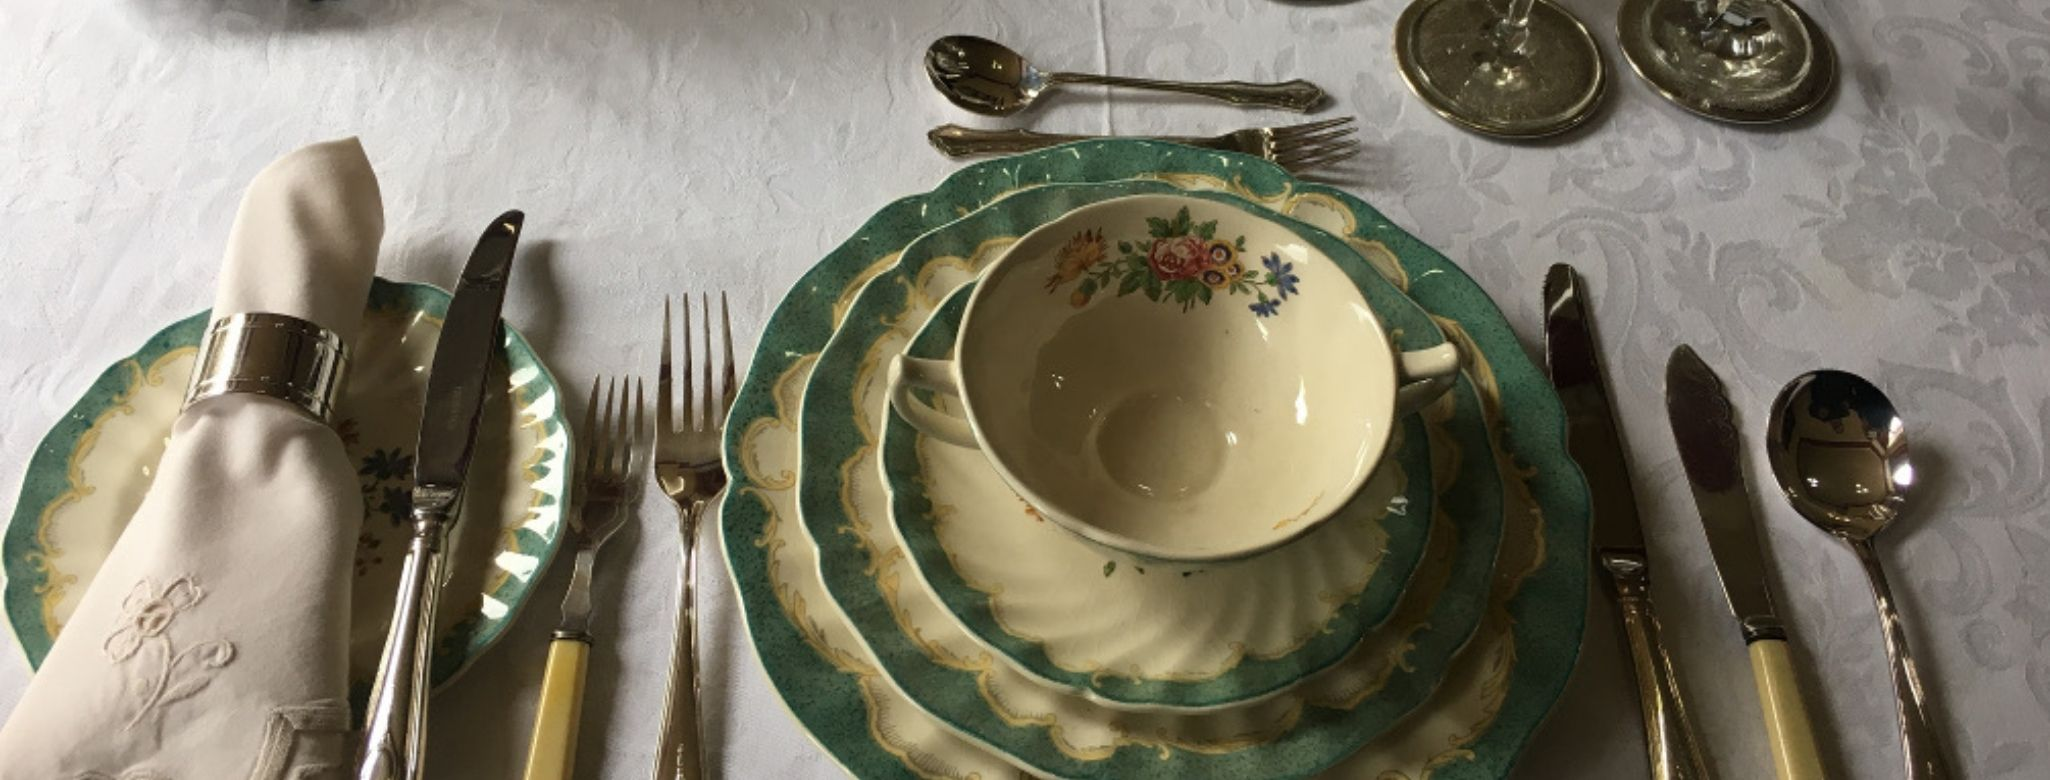 Traditional Fine China And Silverware Makes A Stay At Penghana Bed And Breakfast Accommodation In Queenstown Memorable